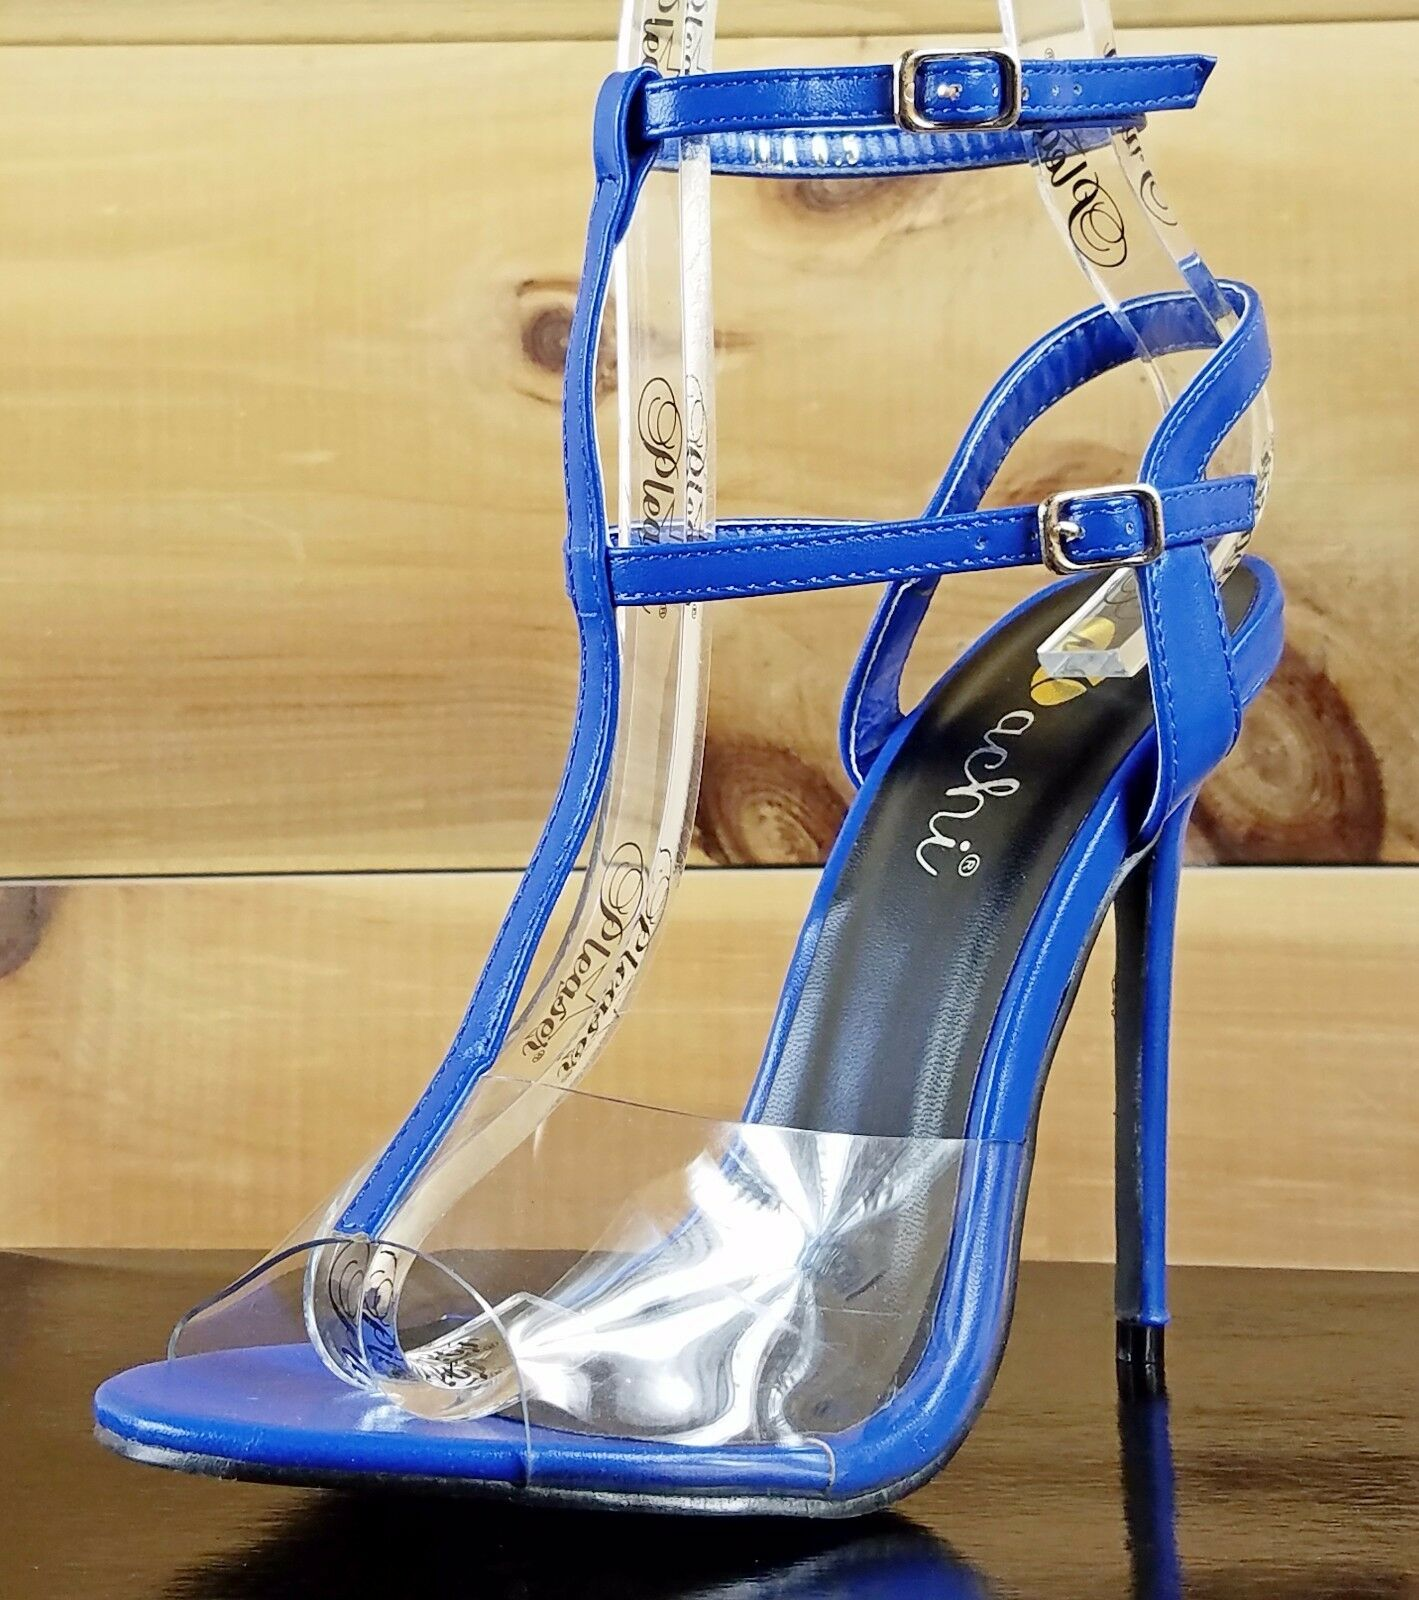 Ula Medium bluee Slingback with ankle strap Clear Lucite Toe High Heel shoes 7-11